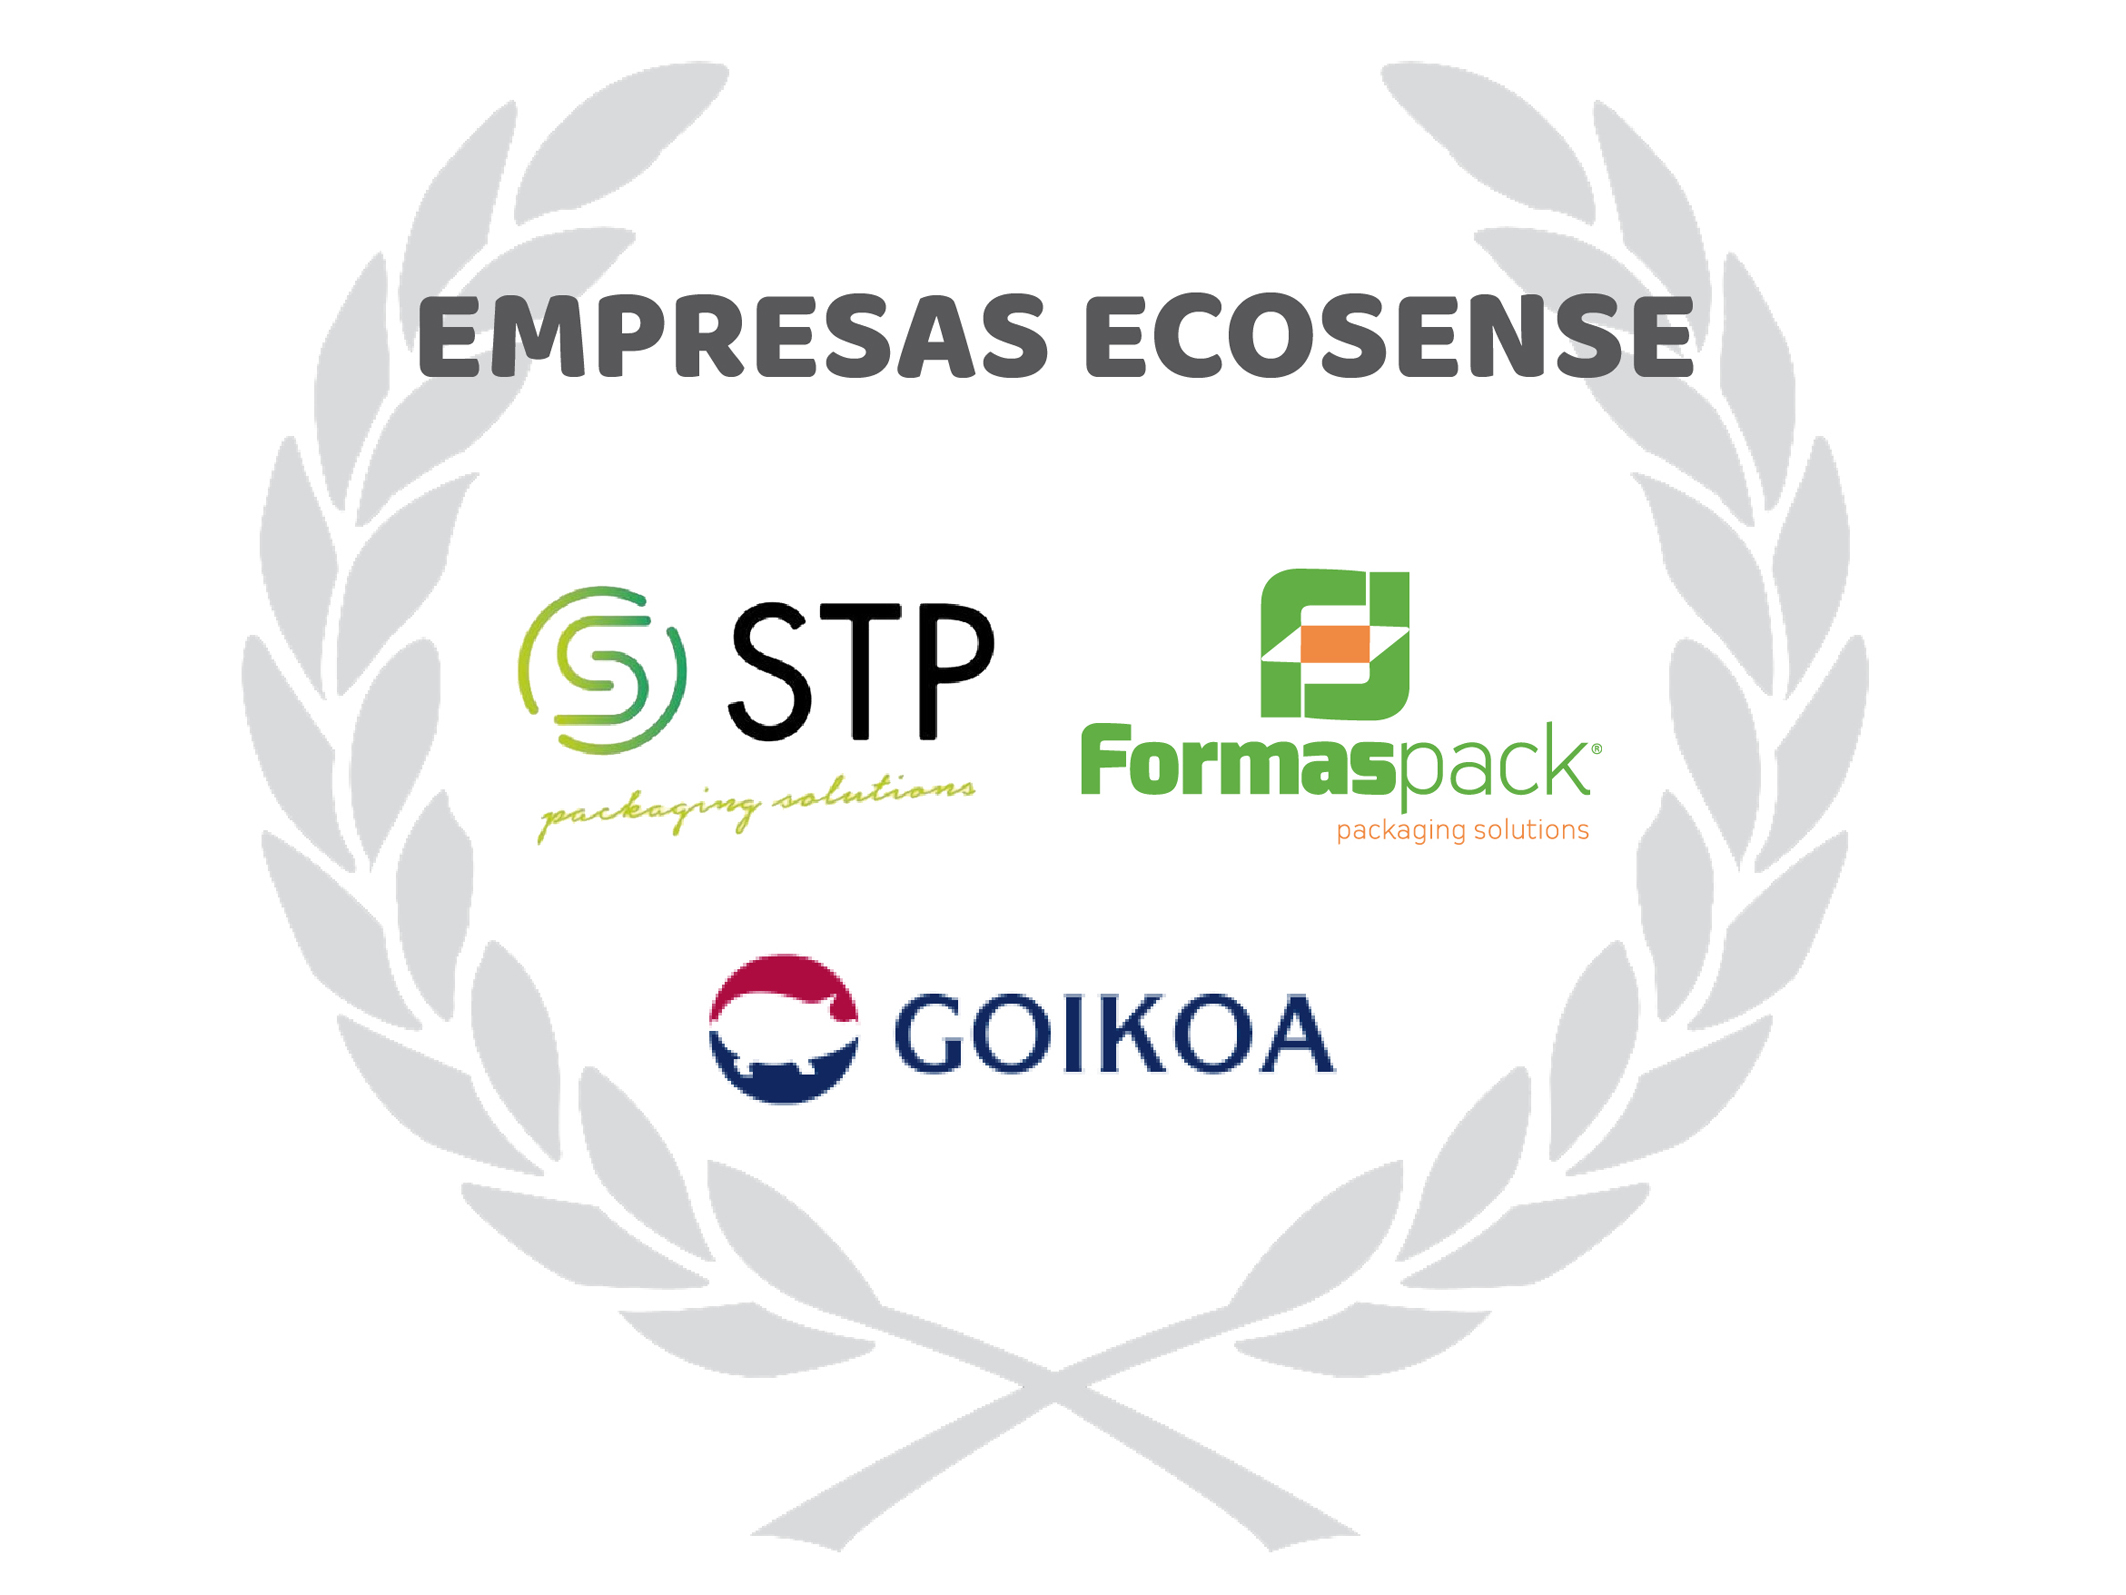 STP, FORMASPACK and GOIKOA, the new ECOSENSE companies